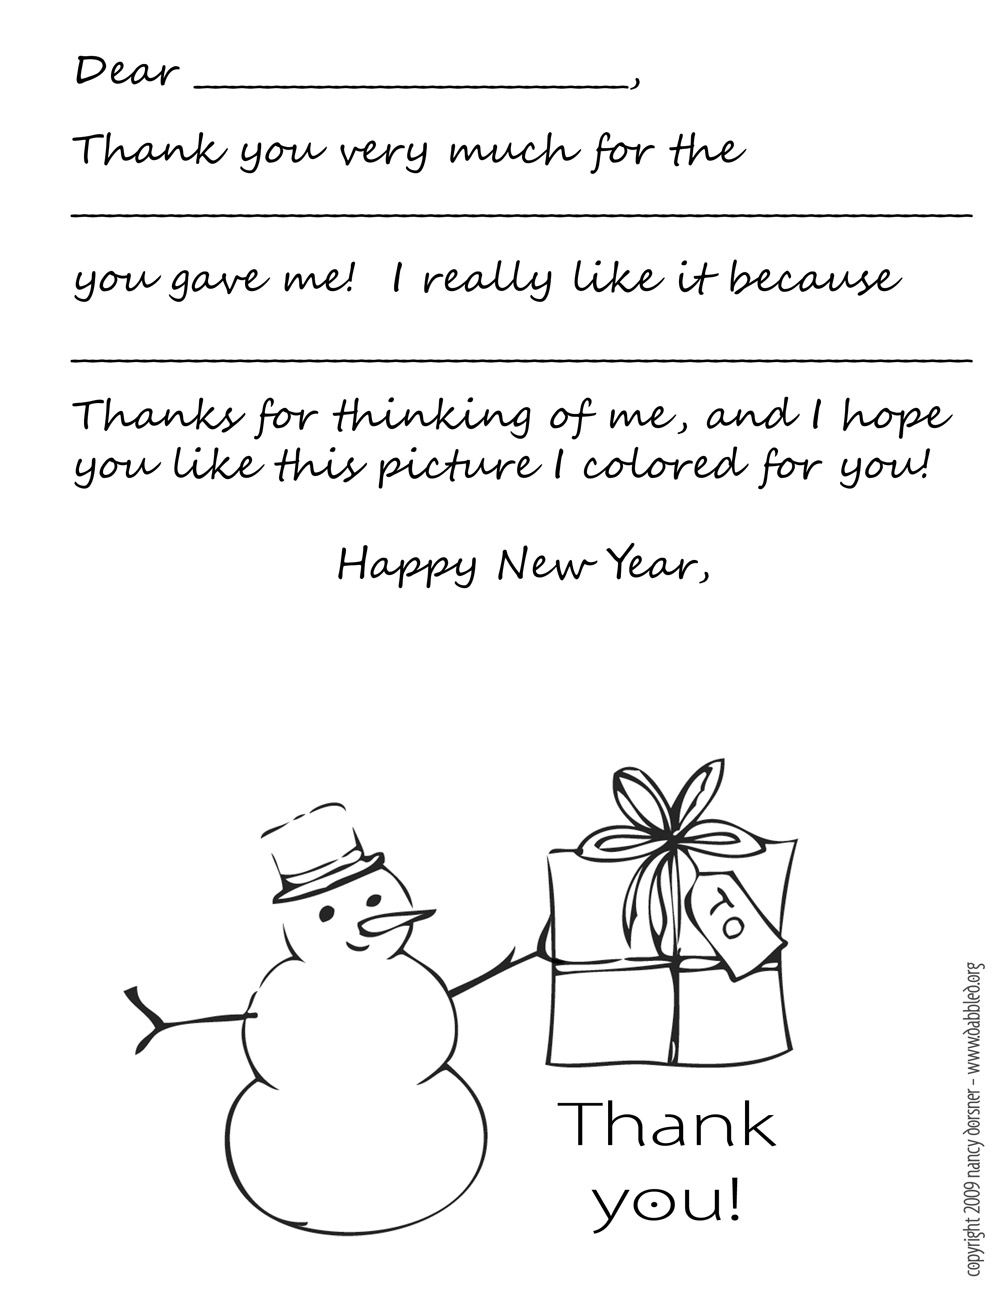 17 Best images about Thank You Cards Kids Can Make on Pinterest ...